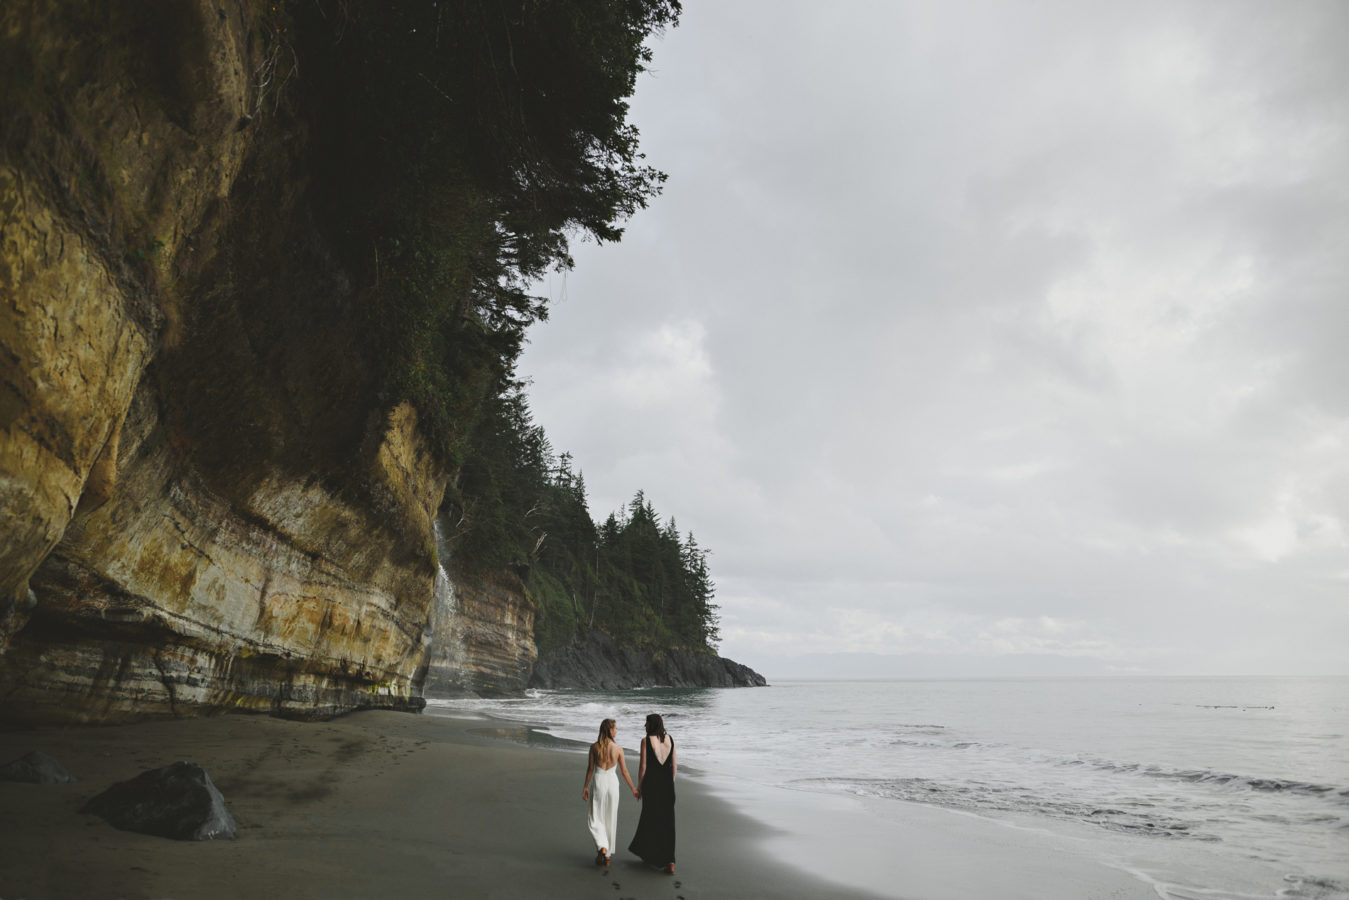 two brides walking down the edge of a beach towards a waterfall at the cliff's edge